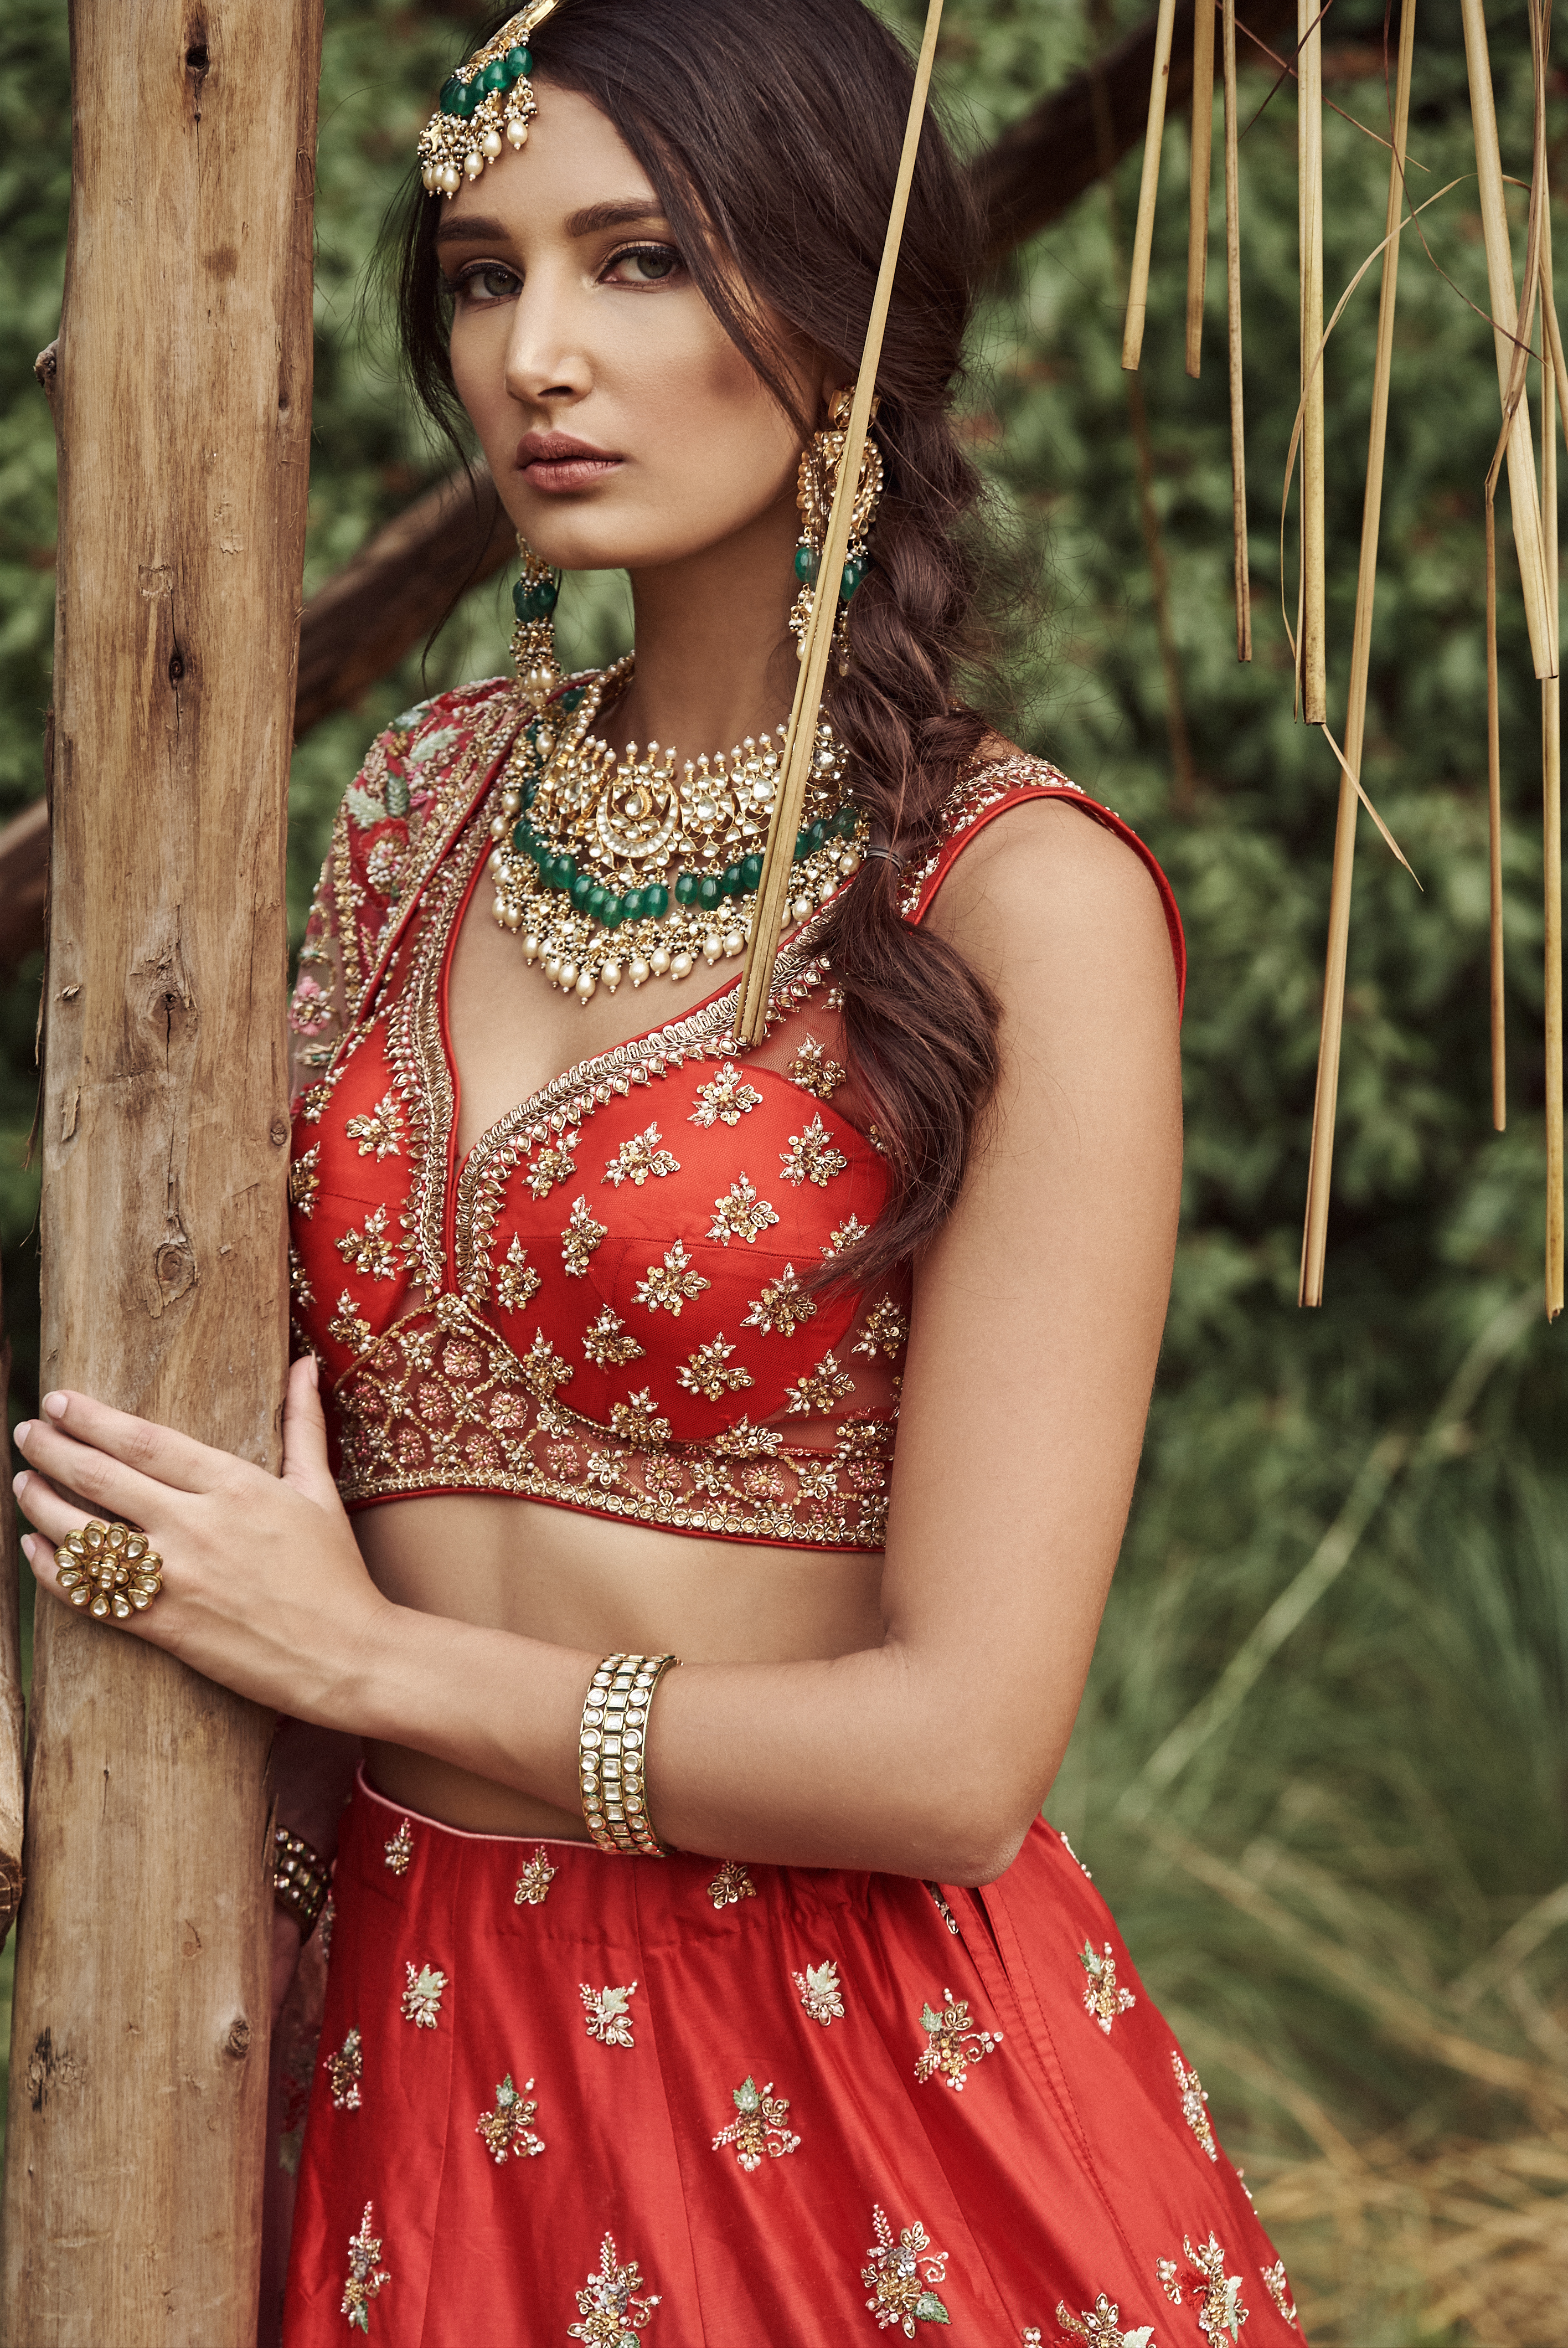 bride in red lehenga and contrasting jewelry